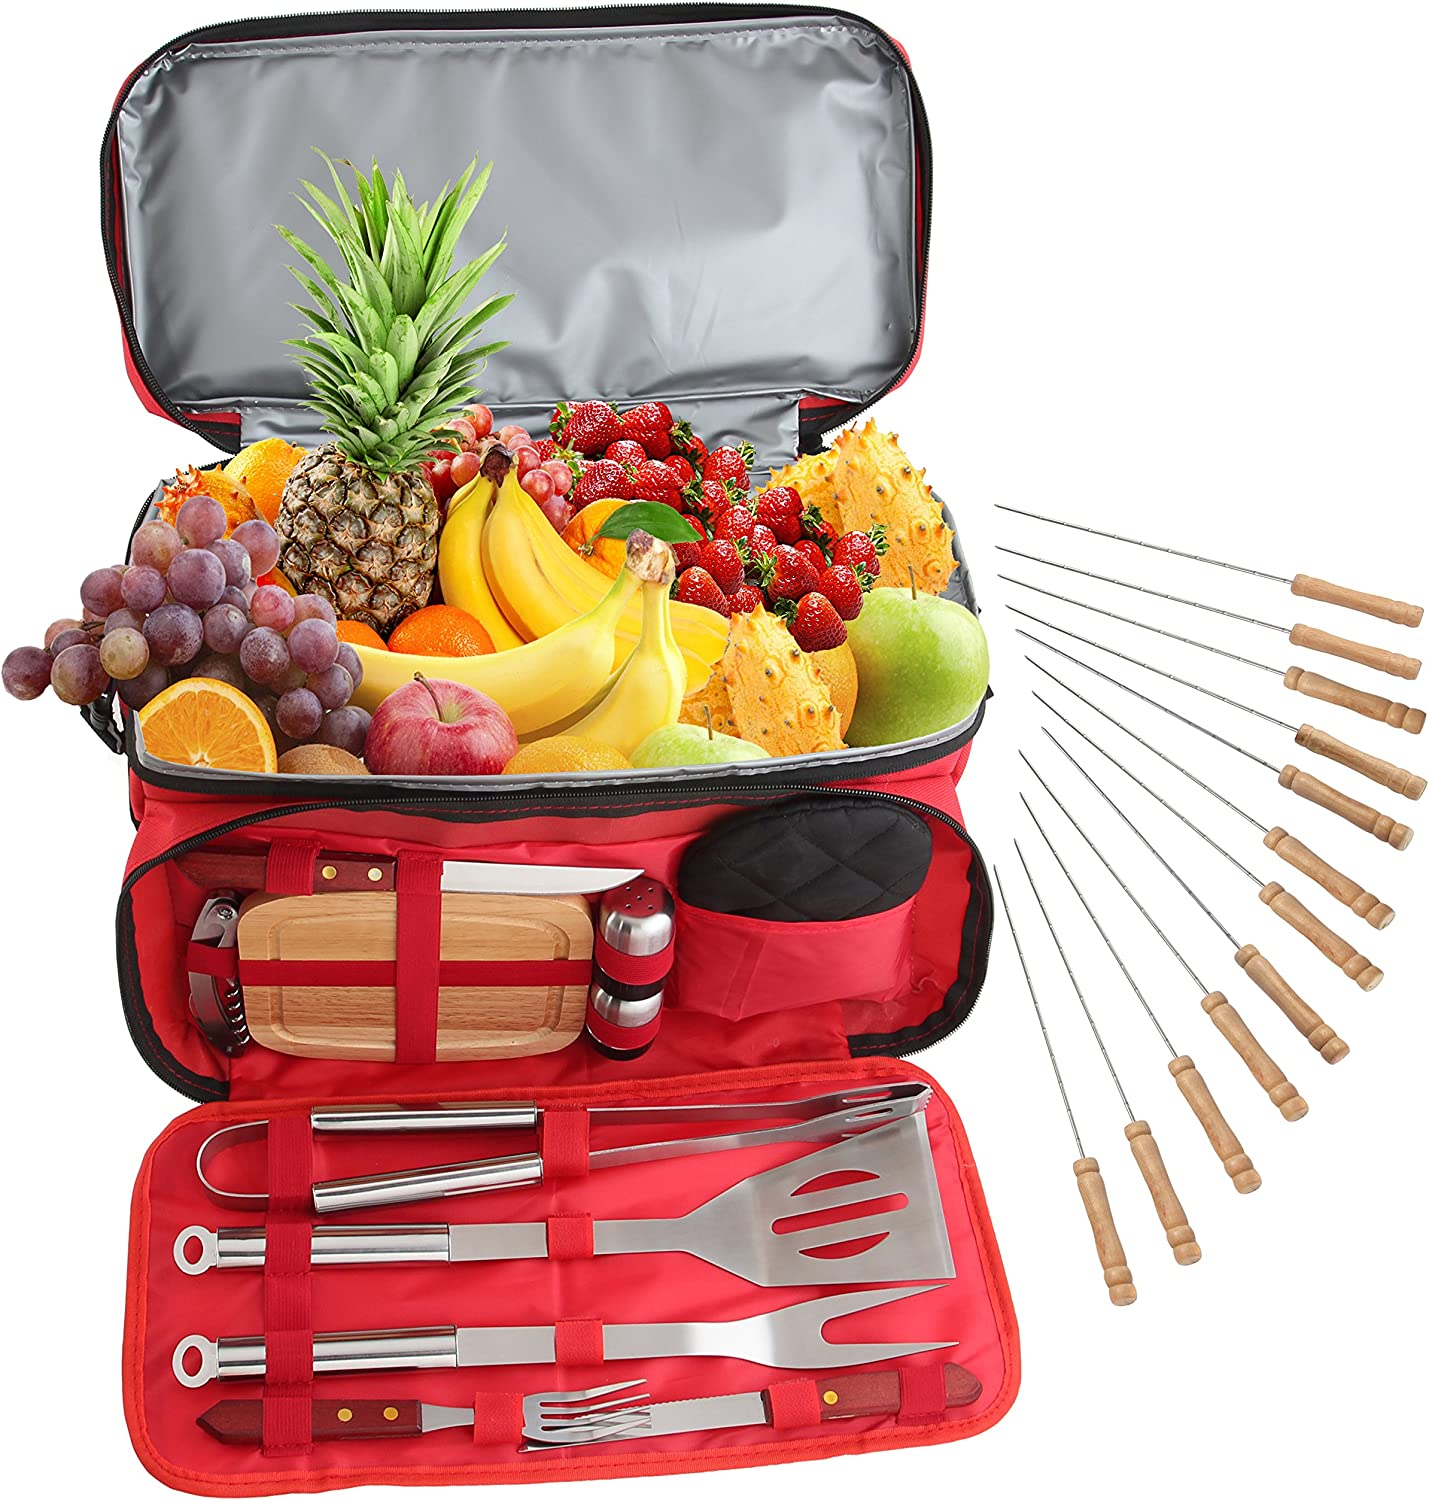 ROMANTICIST Heavy Duty BBQ Grill Accessories Set with 15 Can Cooler Bag – 24Pc Stainless Steel Barbecue Tool Set in Water Proof Insulated Bag for Outdoor Picnic Camping Tailgating – Ideal Gift Kit